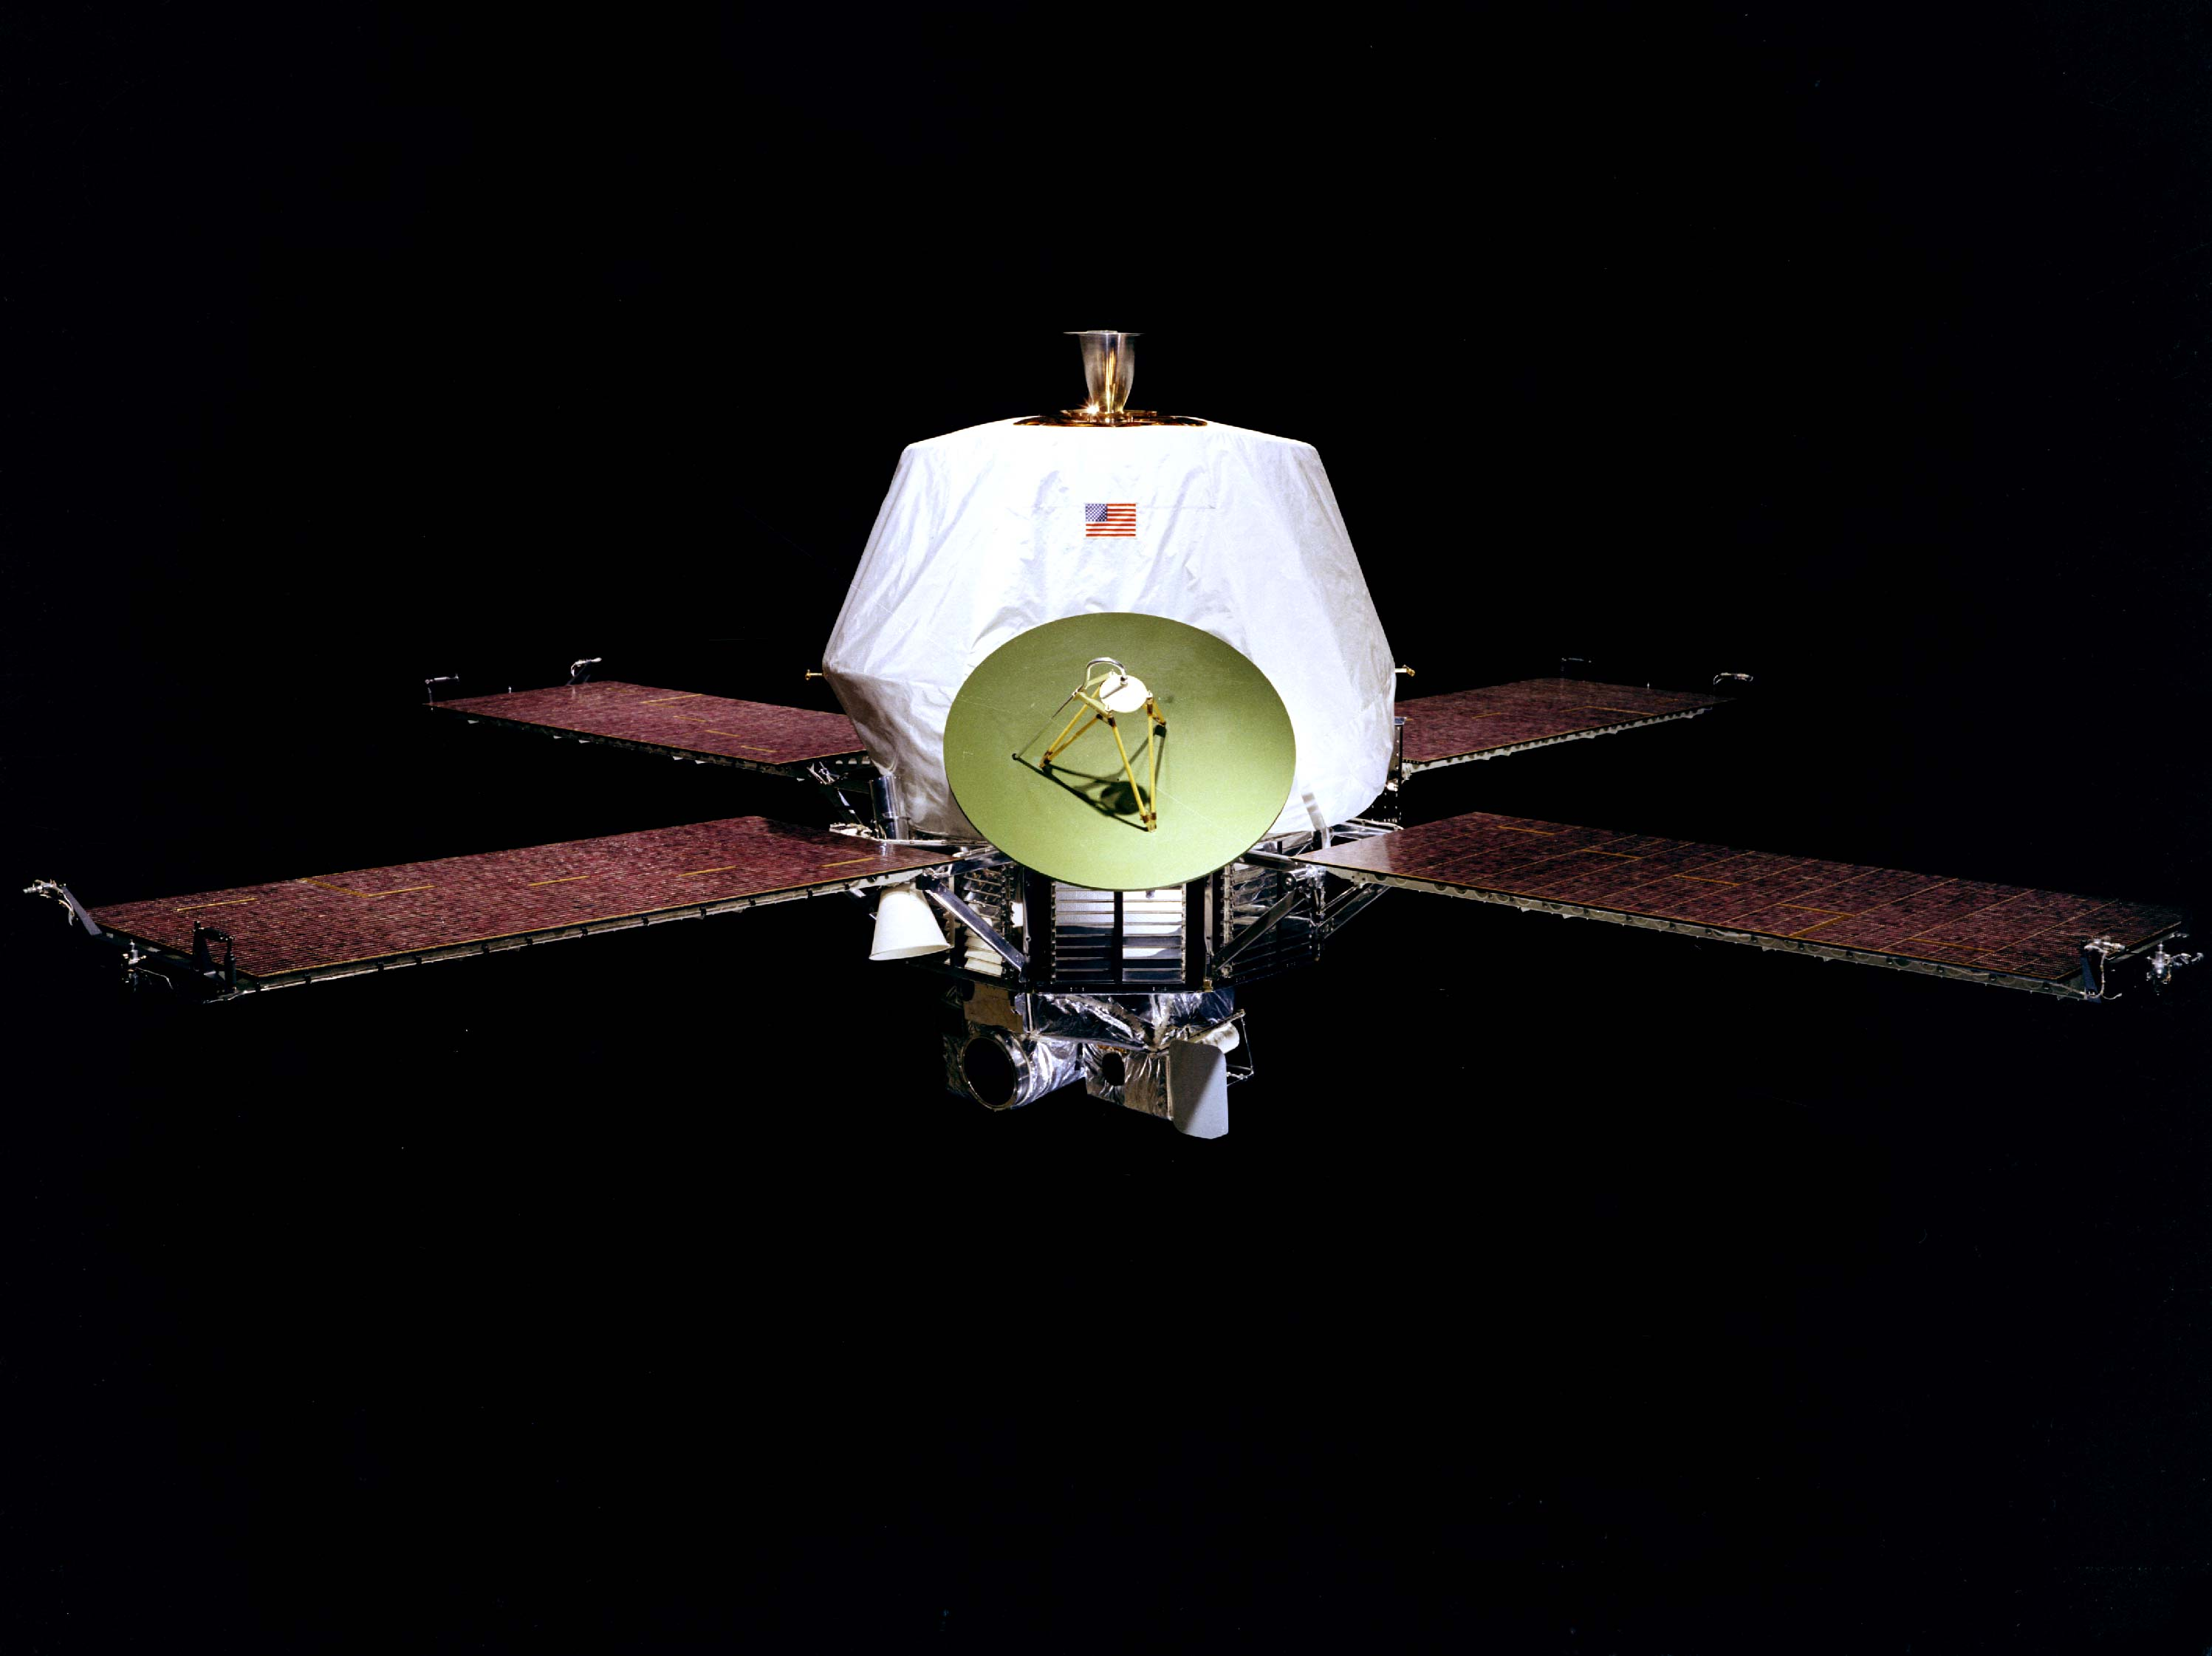 Nasa nssdca spacecraft details image of the mariner h spacecraft sciox Image collections